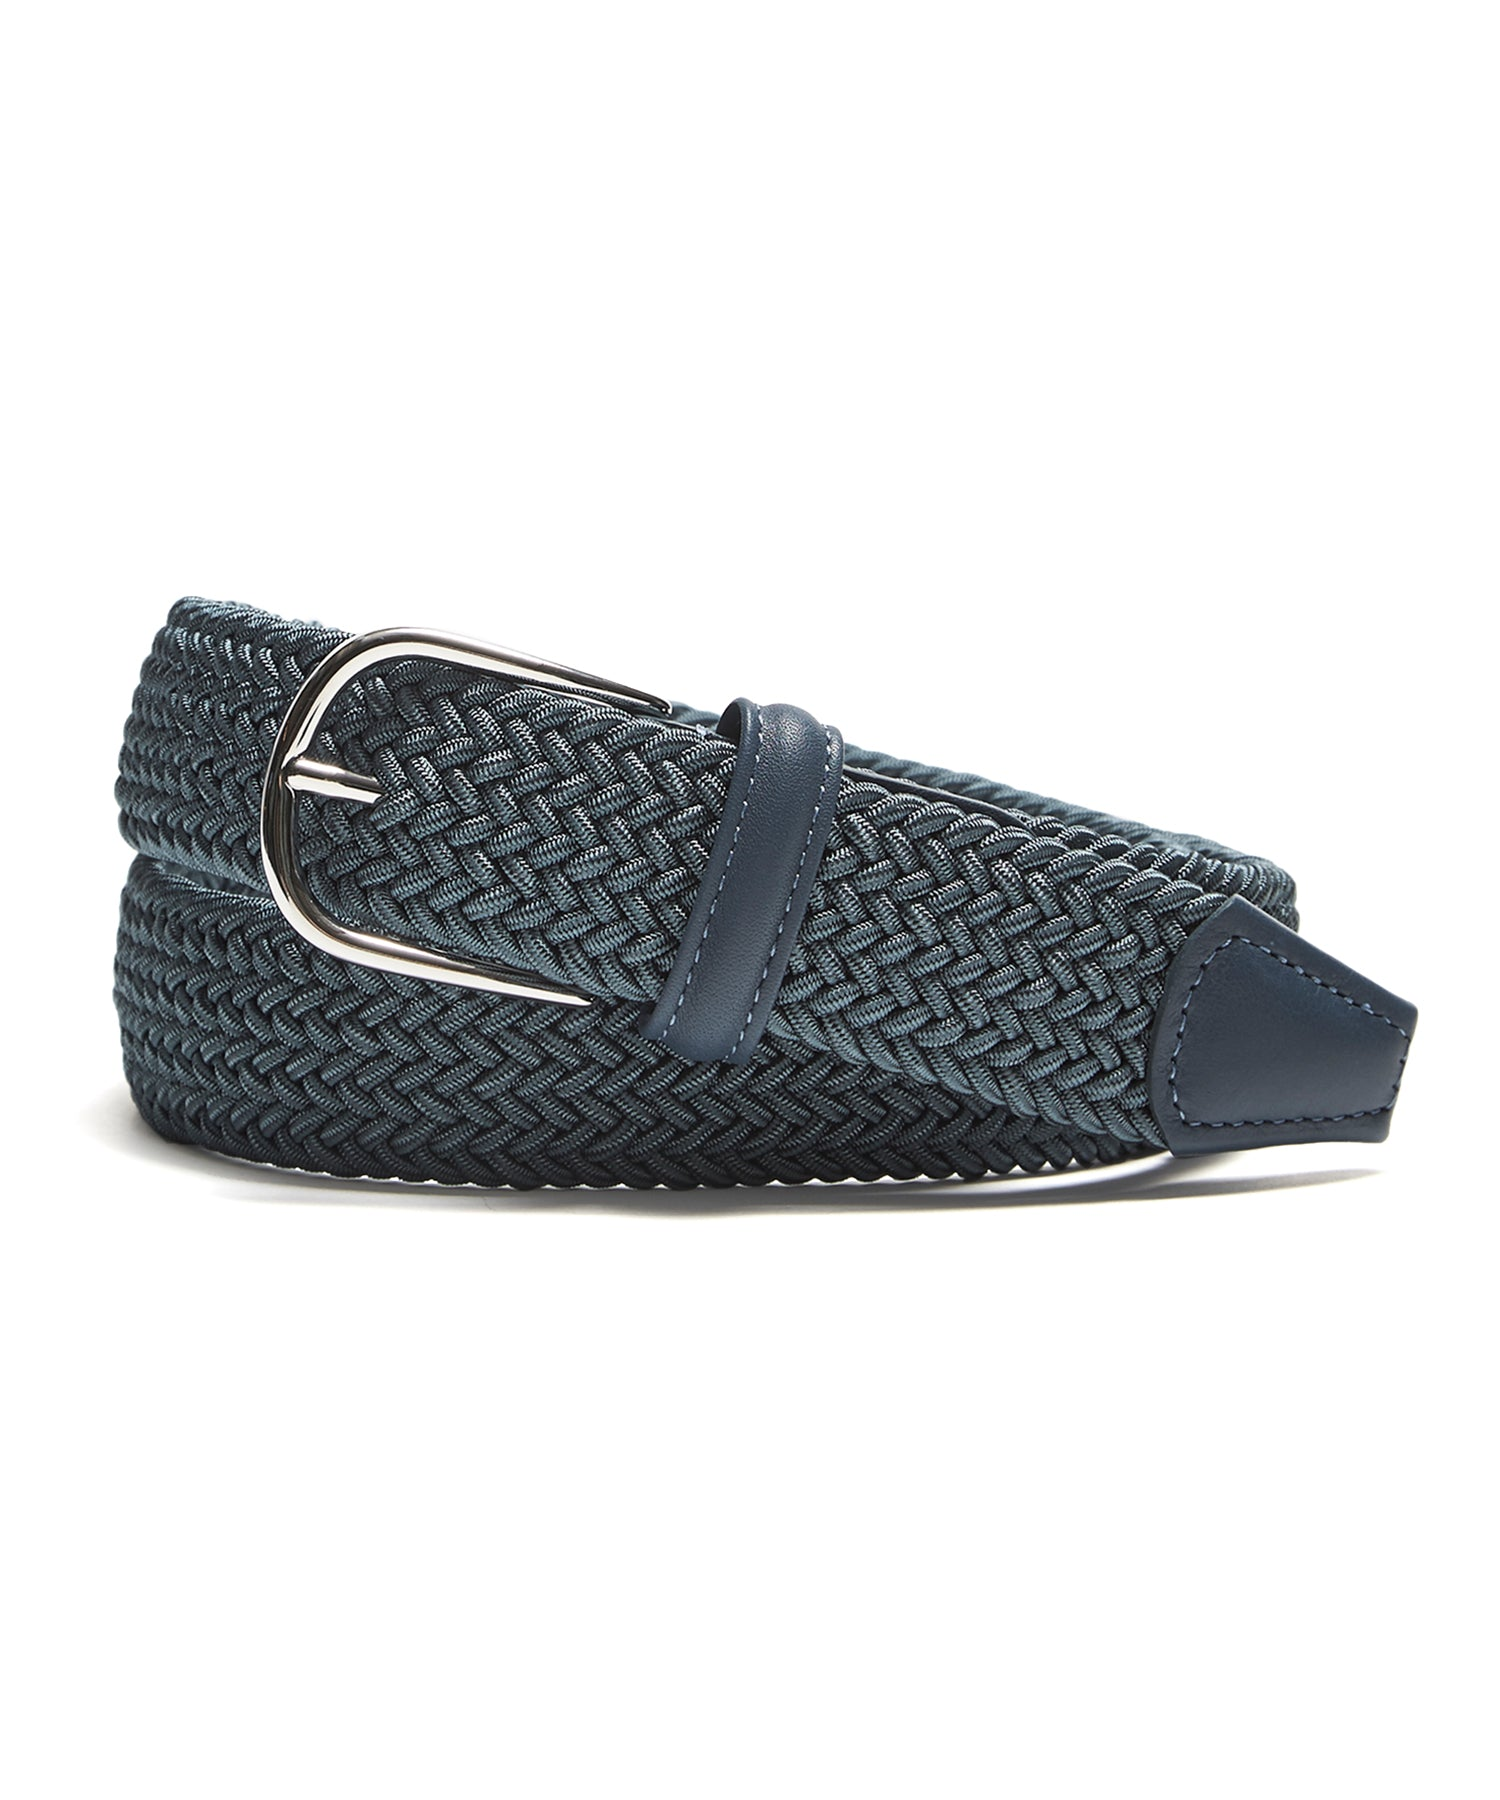 Anderson's Blue Woven Elastic Belt